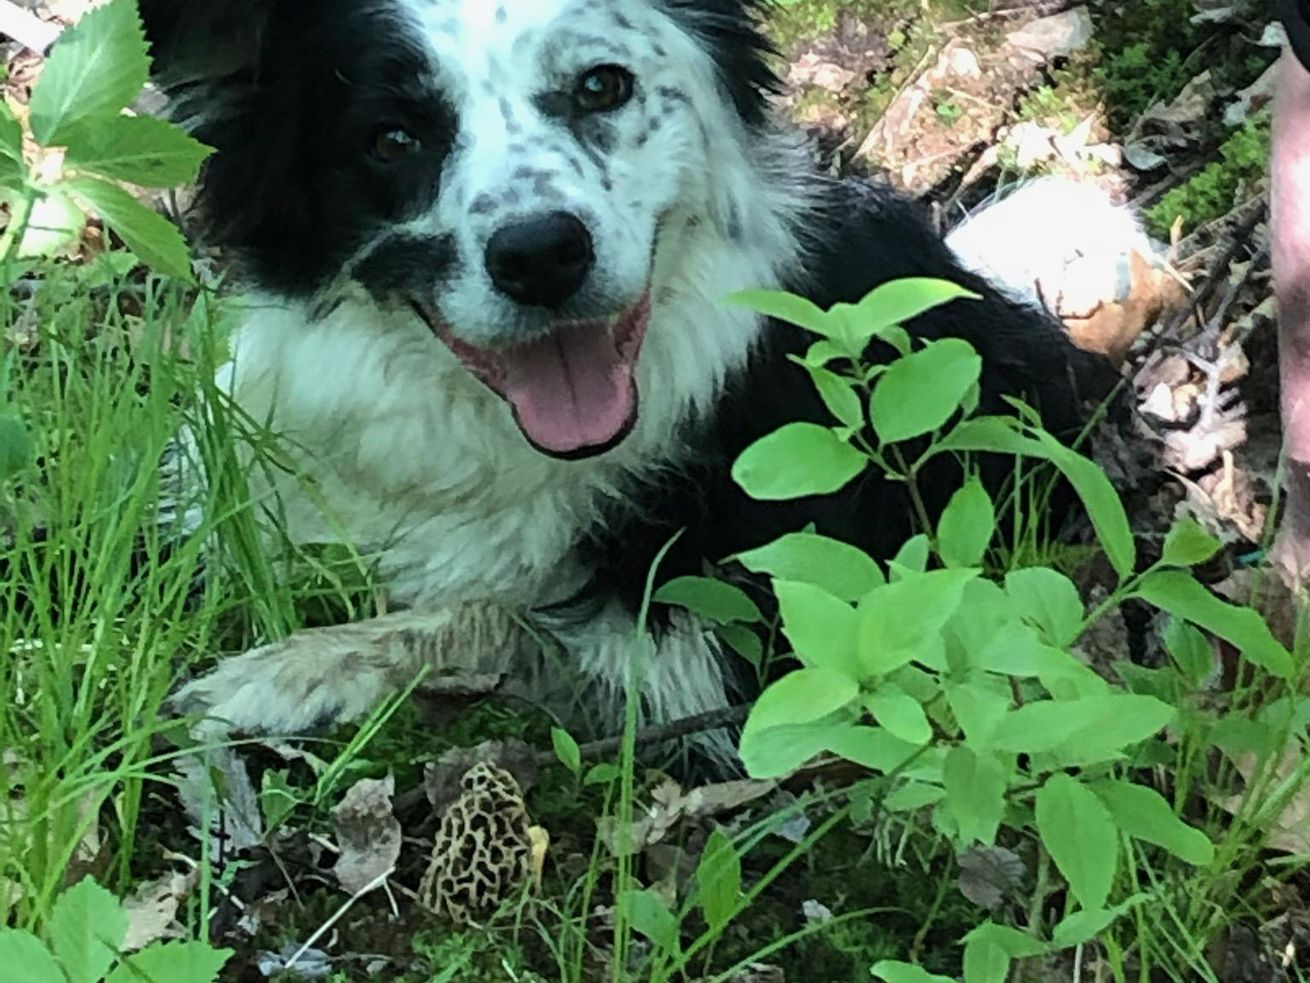 Clarity, a border collie, is the demo dog for teaching morel-hunting to dogs and shown here with her find. Provided by Inga From